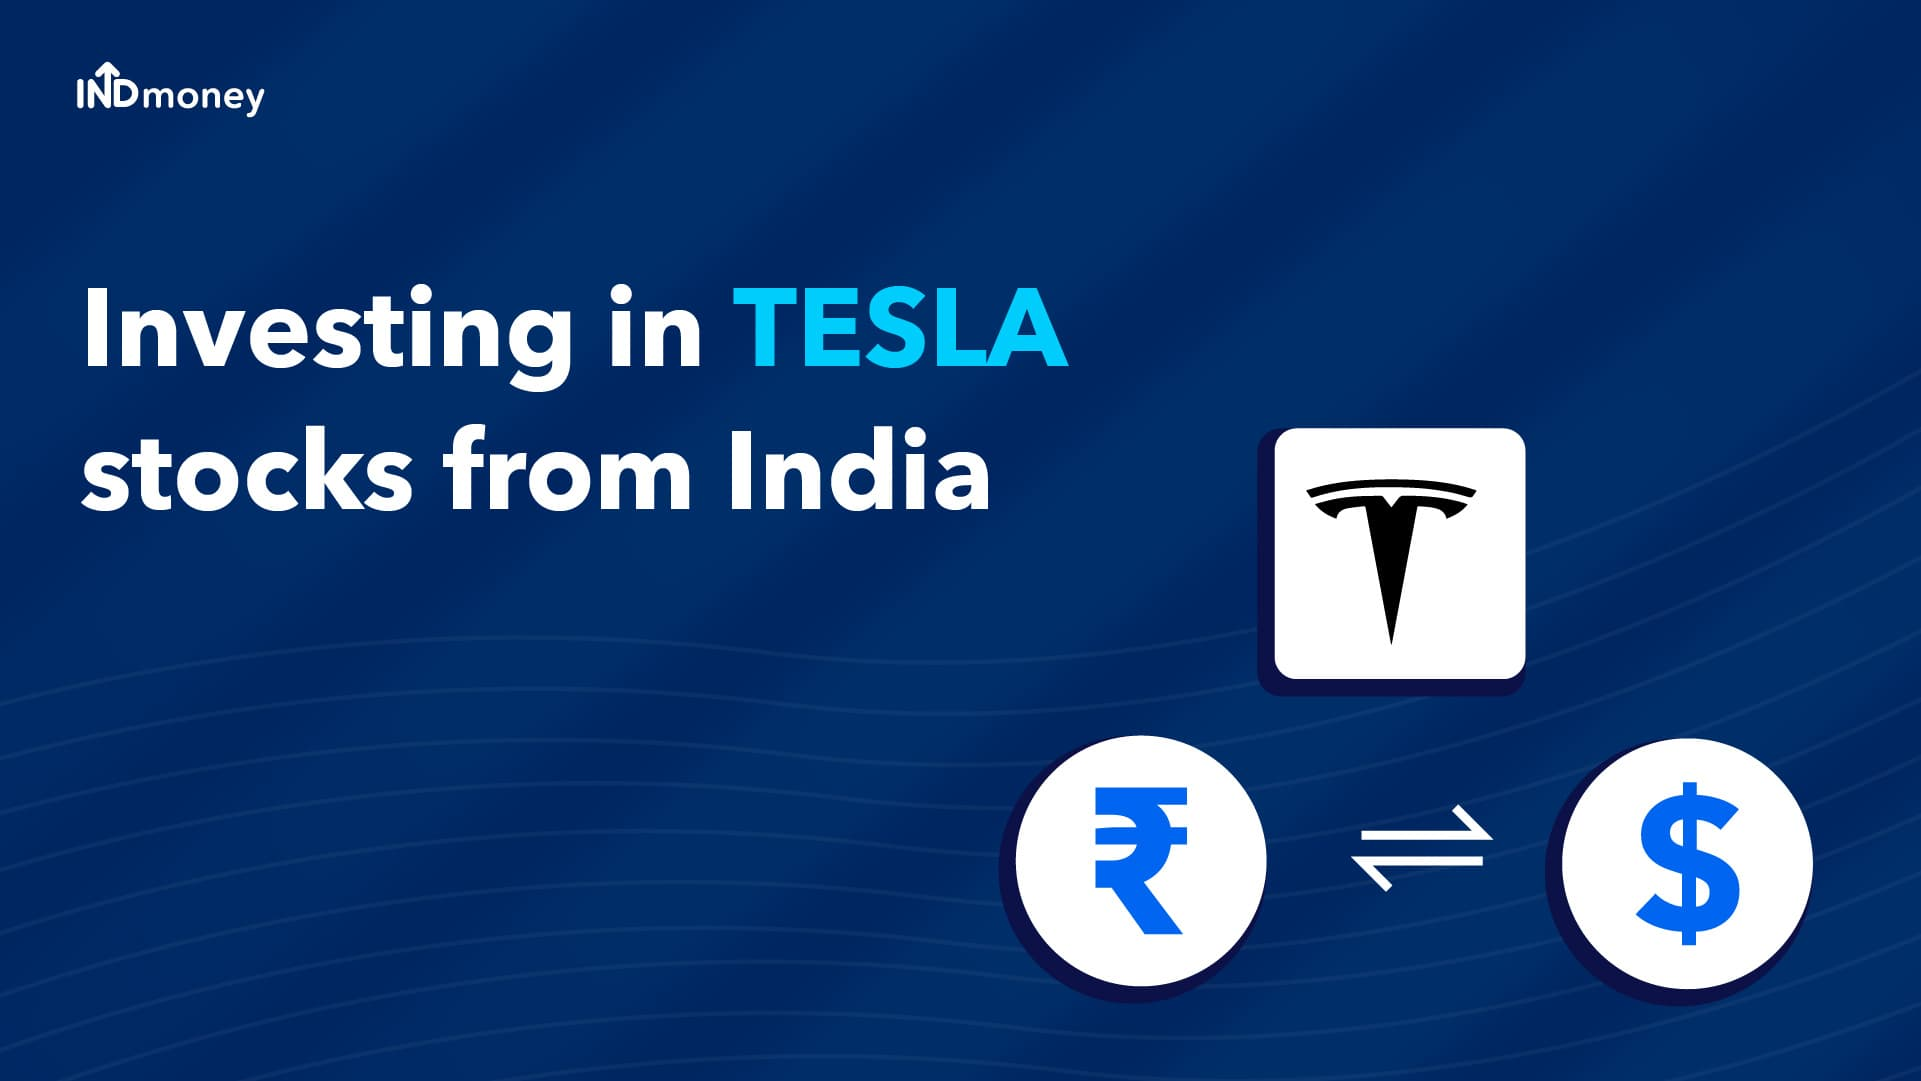 How to Buy Tesla Shares in India: Invest in Tesla stocks from India   INDmoney